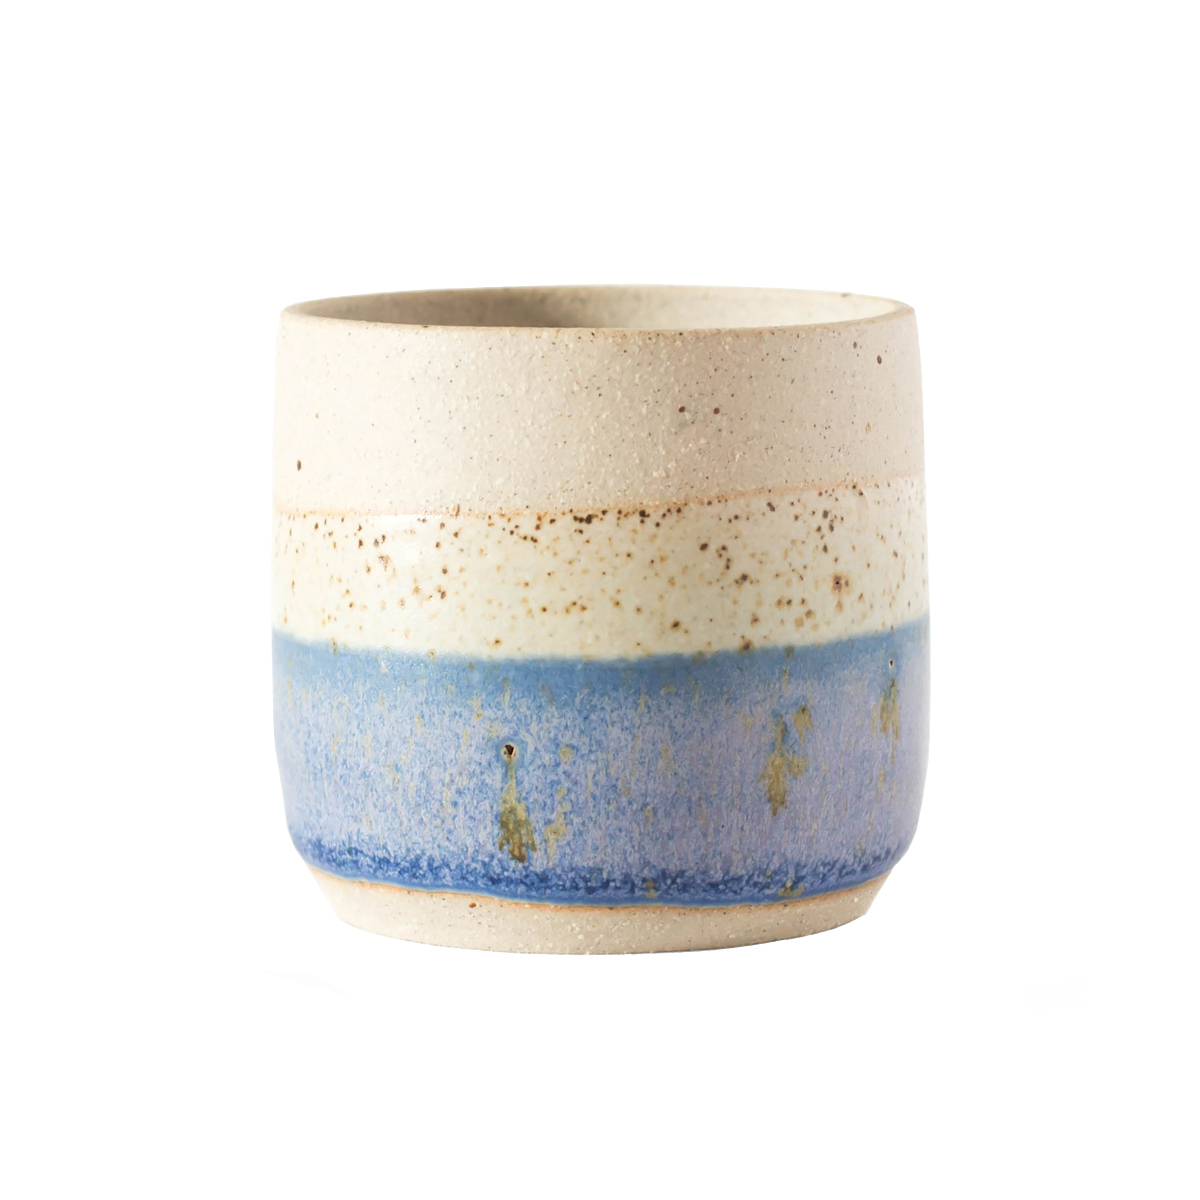 libby-ballard-speckled-ceramic-planter